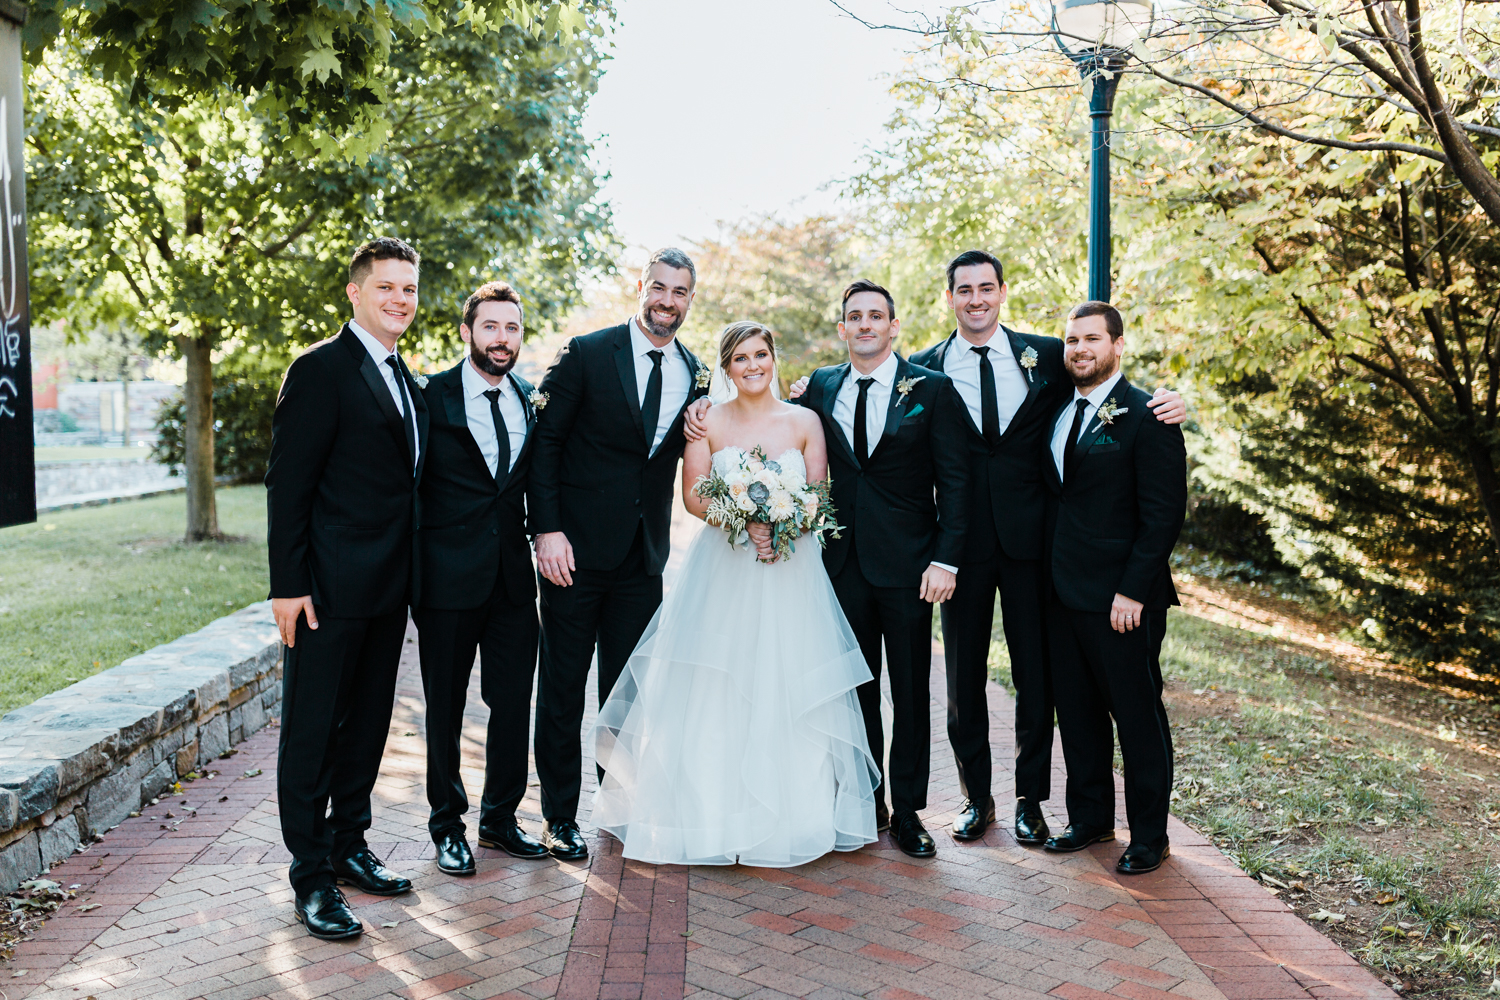 bride poses with the groomsmen - bridal party ideas